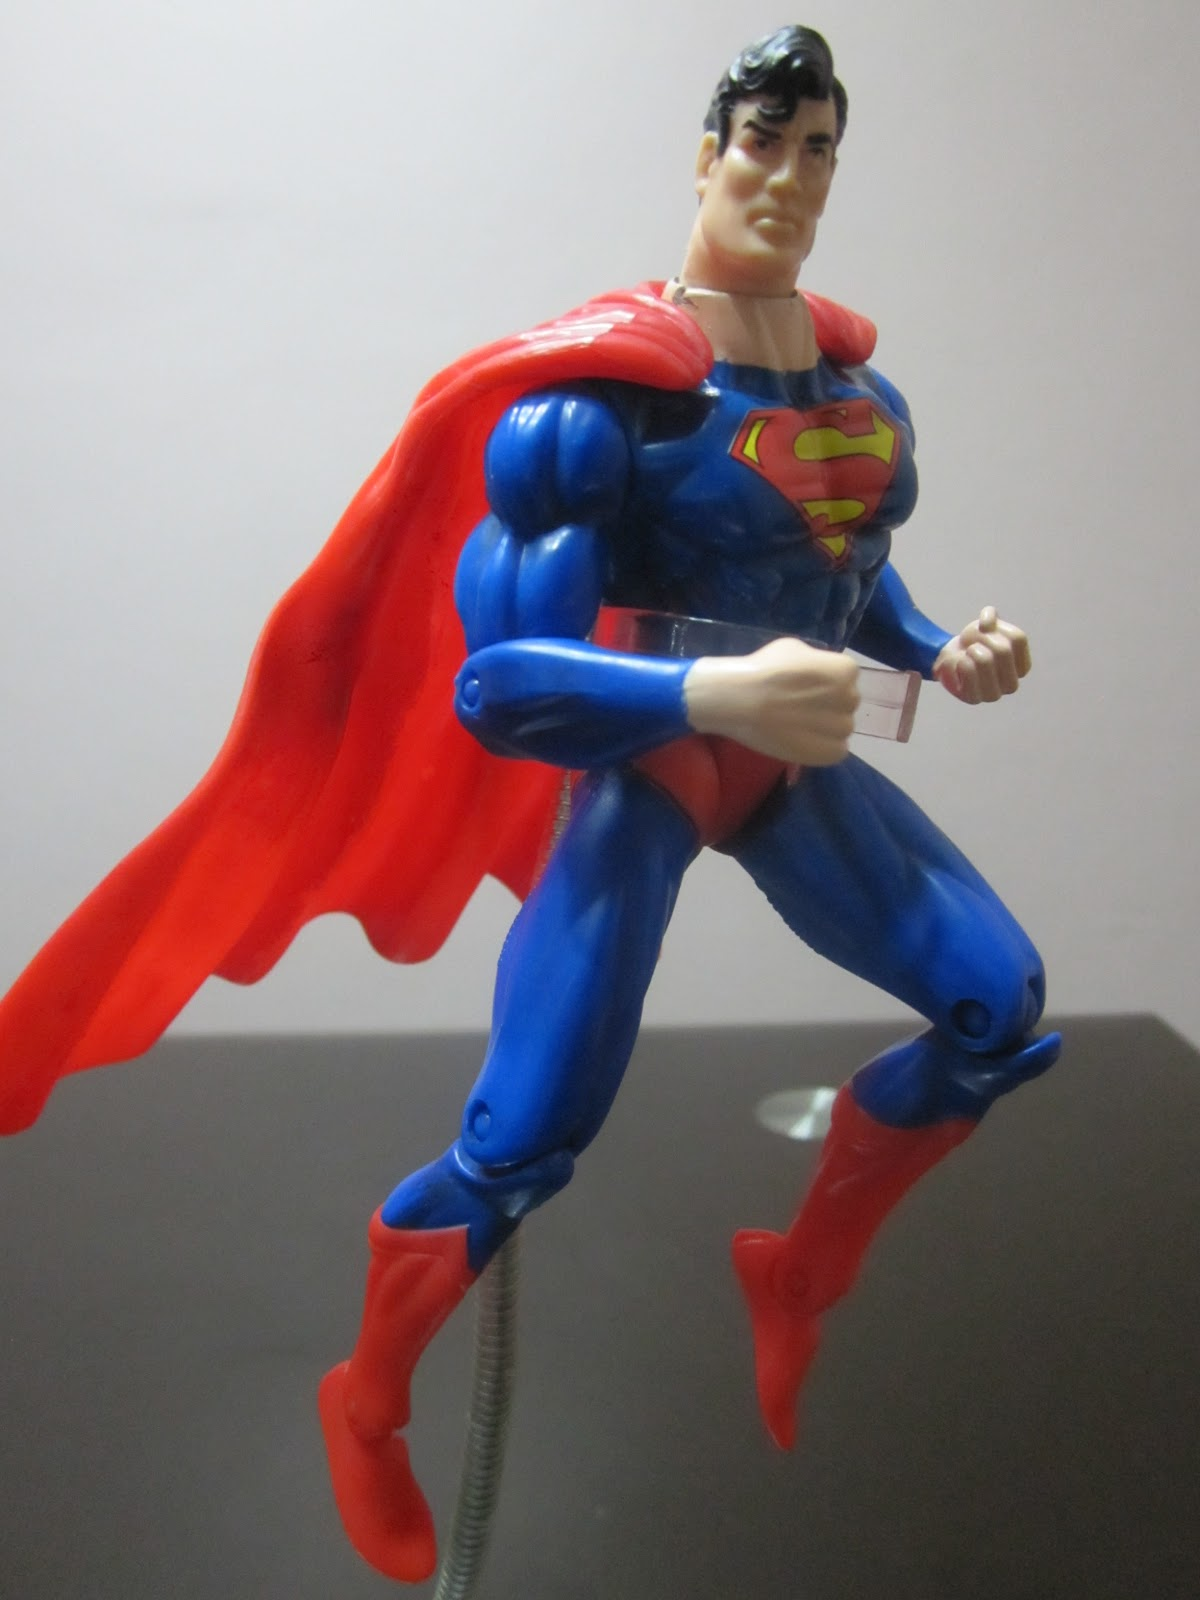 Toys From Hasbro : Superman homepage